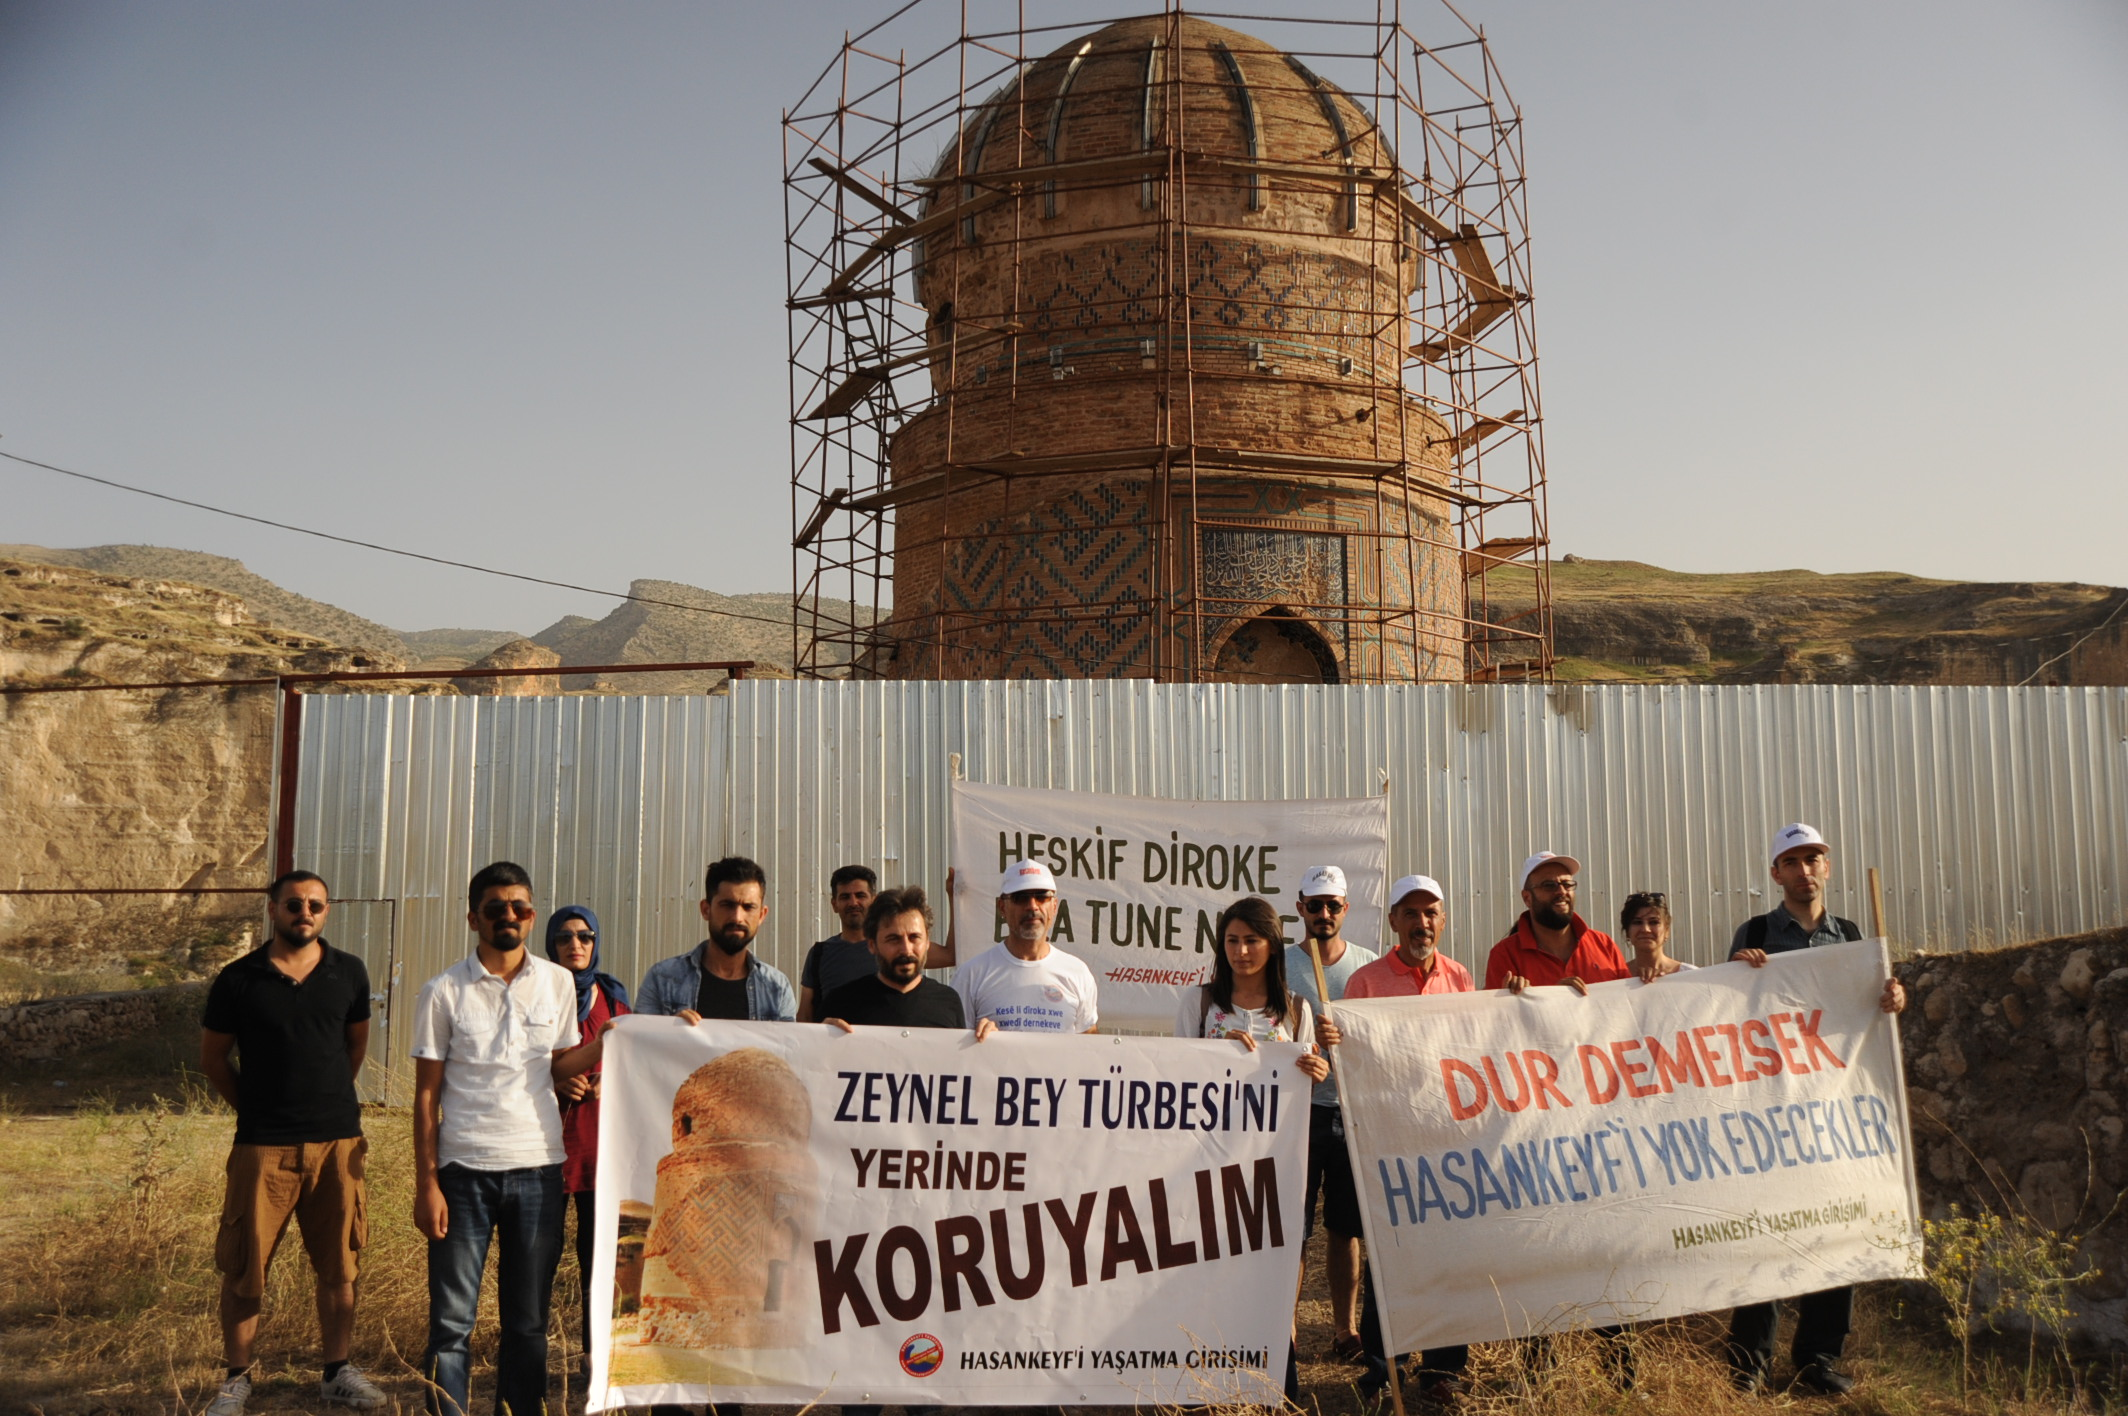 Current developments in the Ilisu Dam project in Turkey